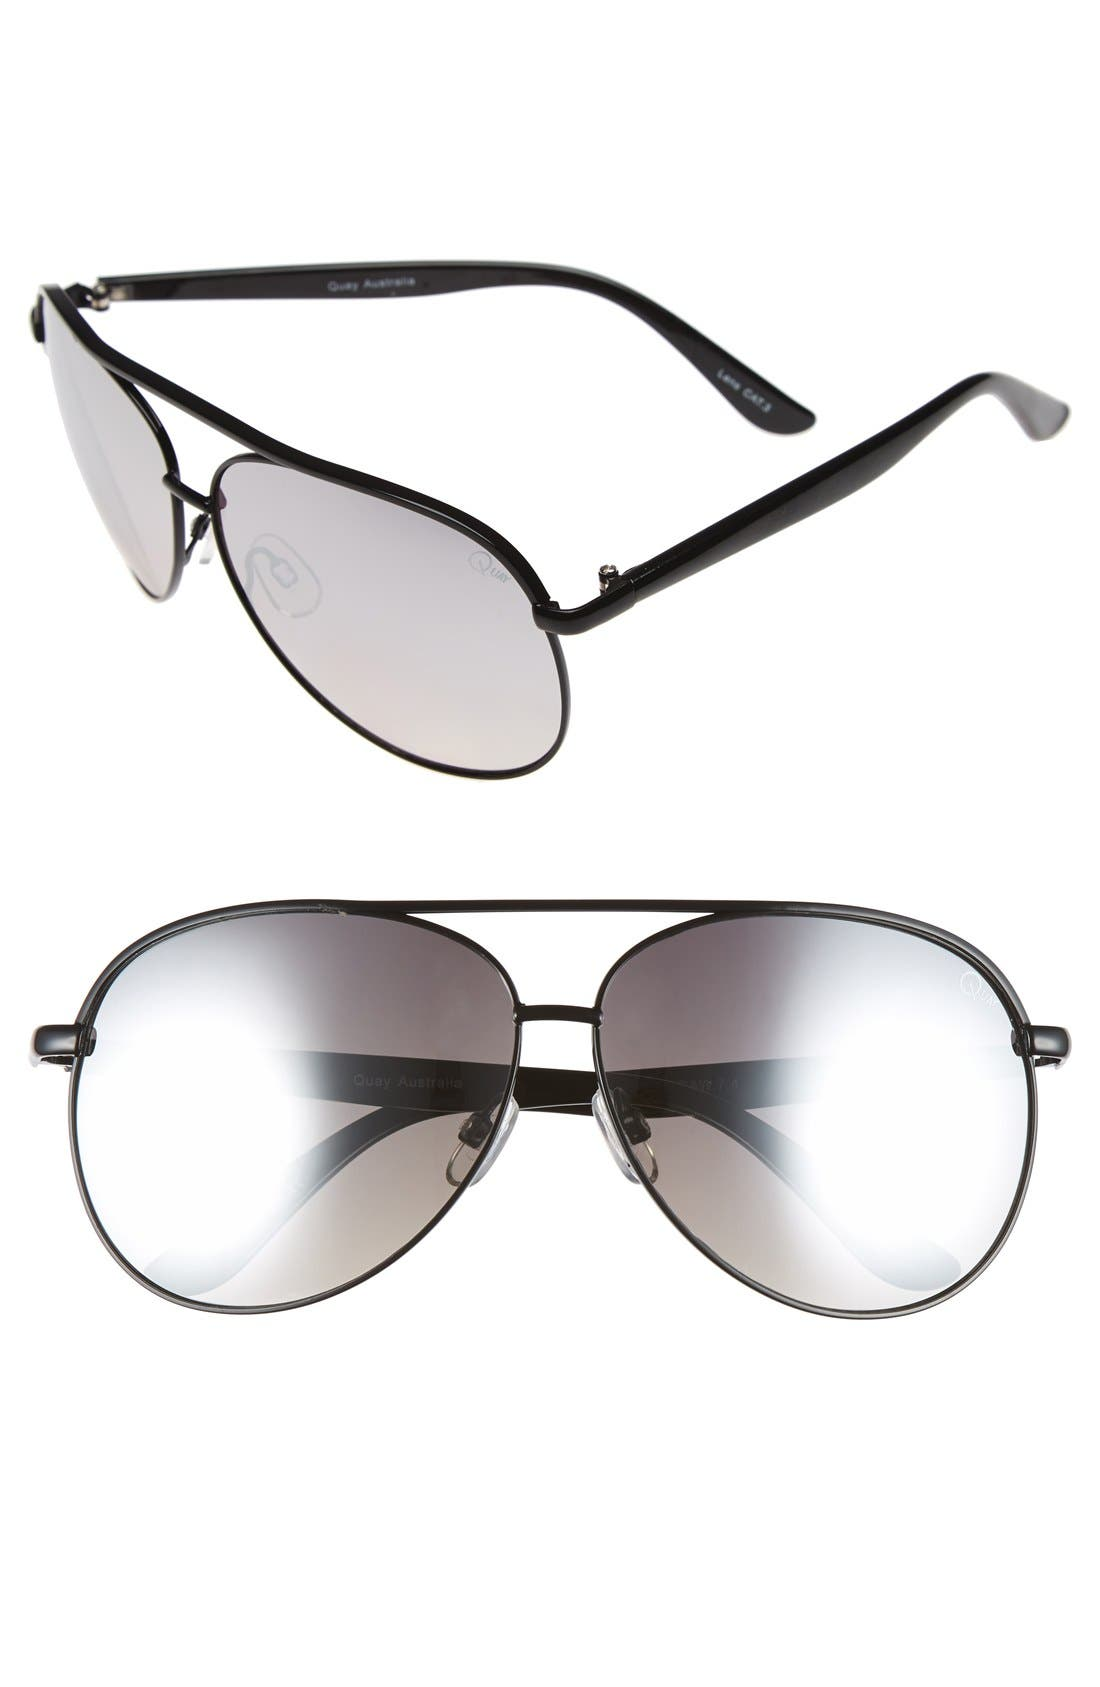 Alternate Image 1 Selected - Quay Australia 'Macaw' 65mm Aviator Sunglasses